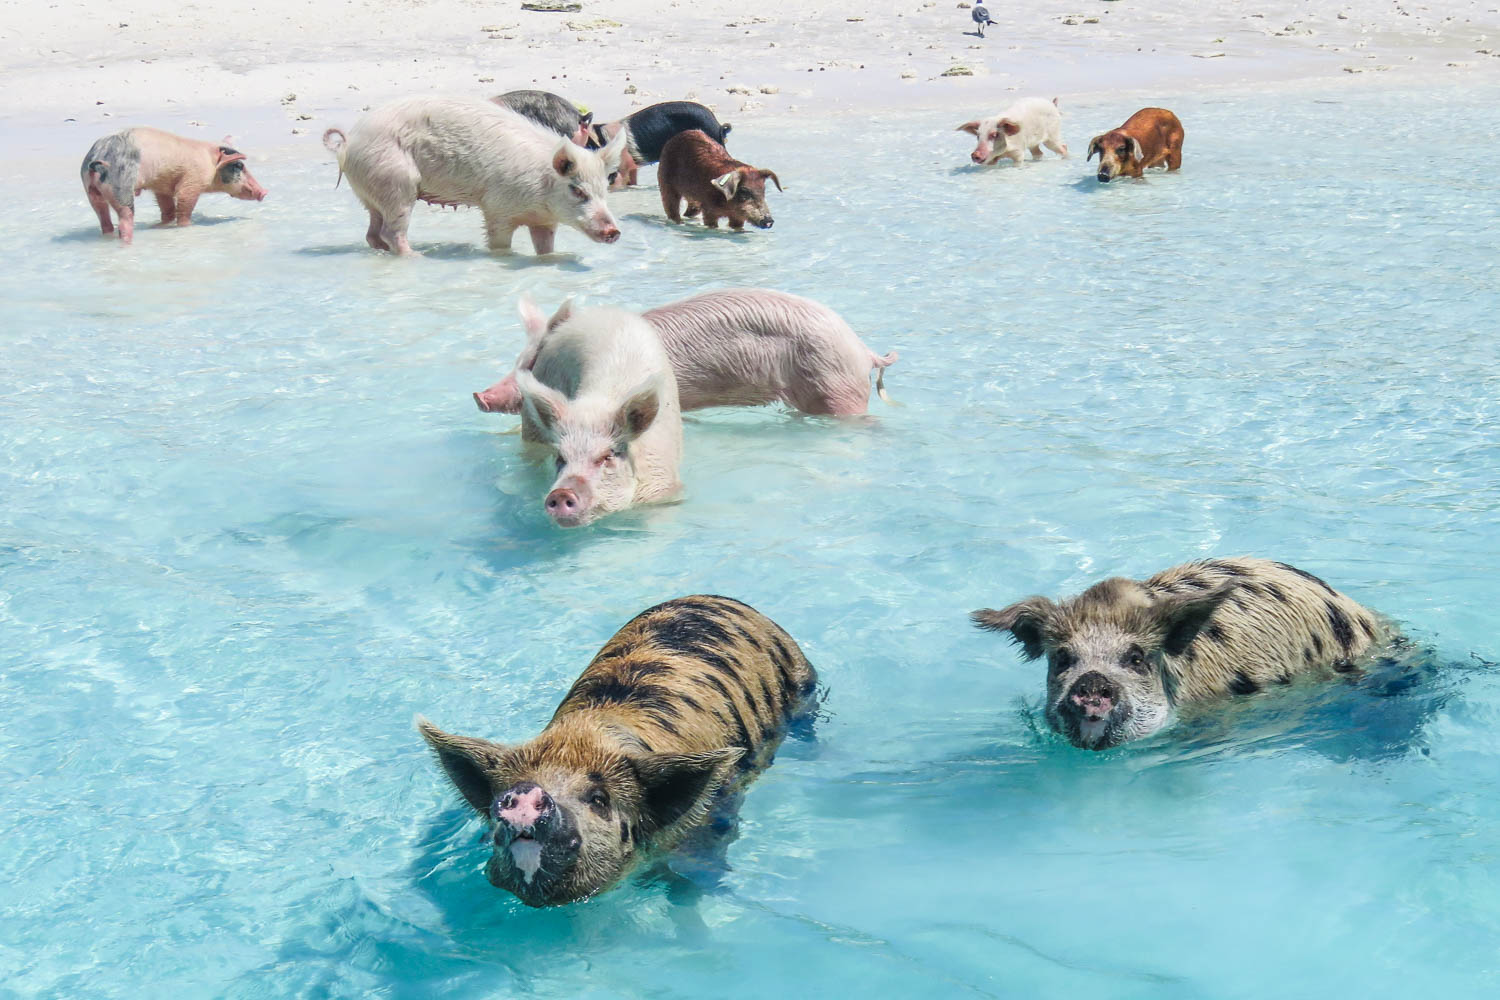 Where is Pig Island? Pig Beach is located on Pig Island also known as Big Major Cay which is 1 of 365 islands that make up the Exuma Cays within the Bahamas Out islands.